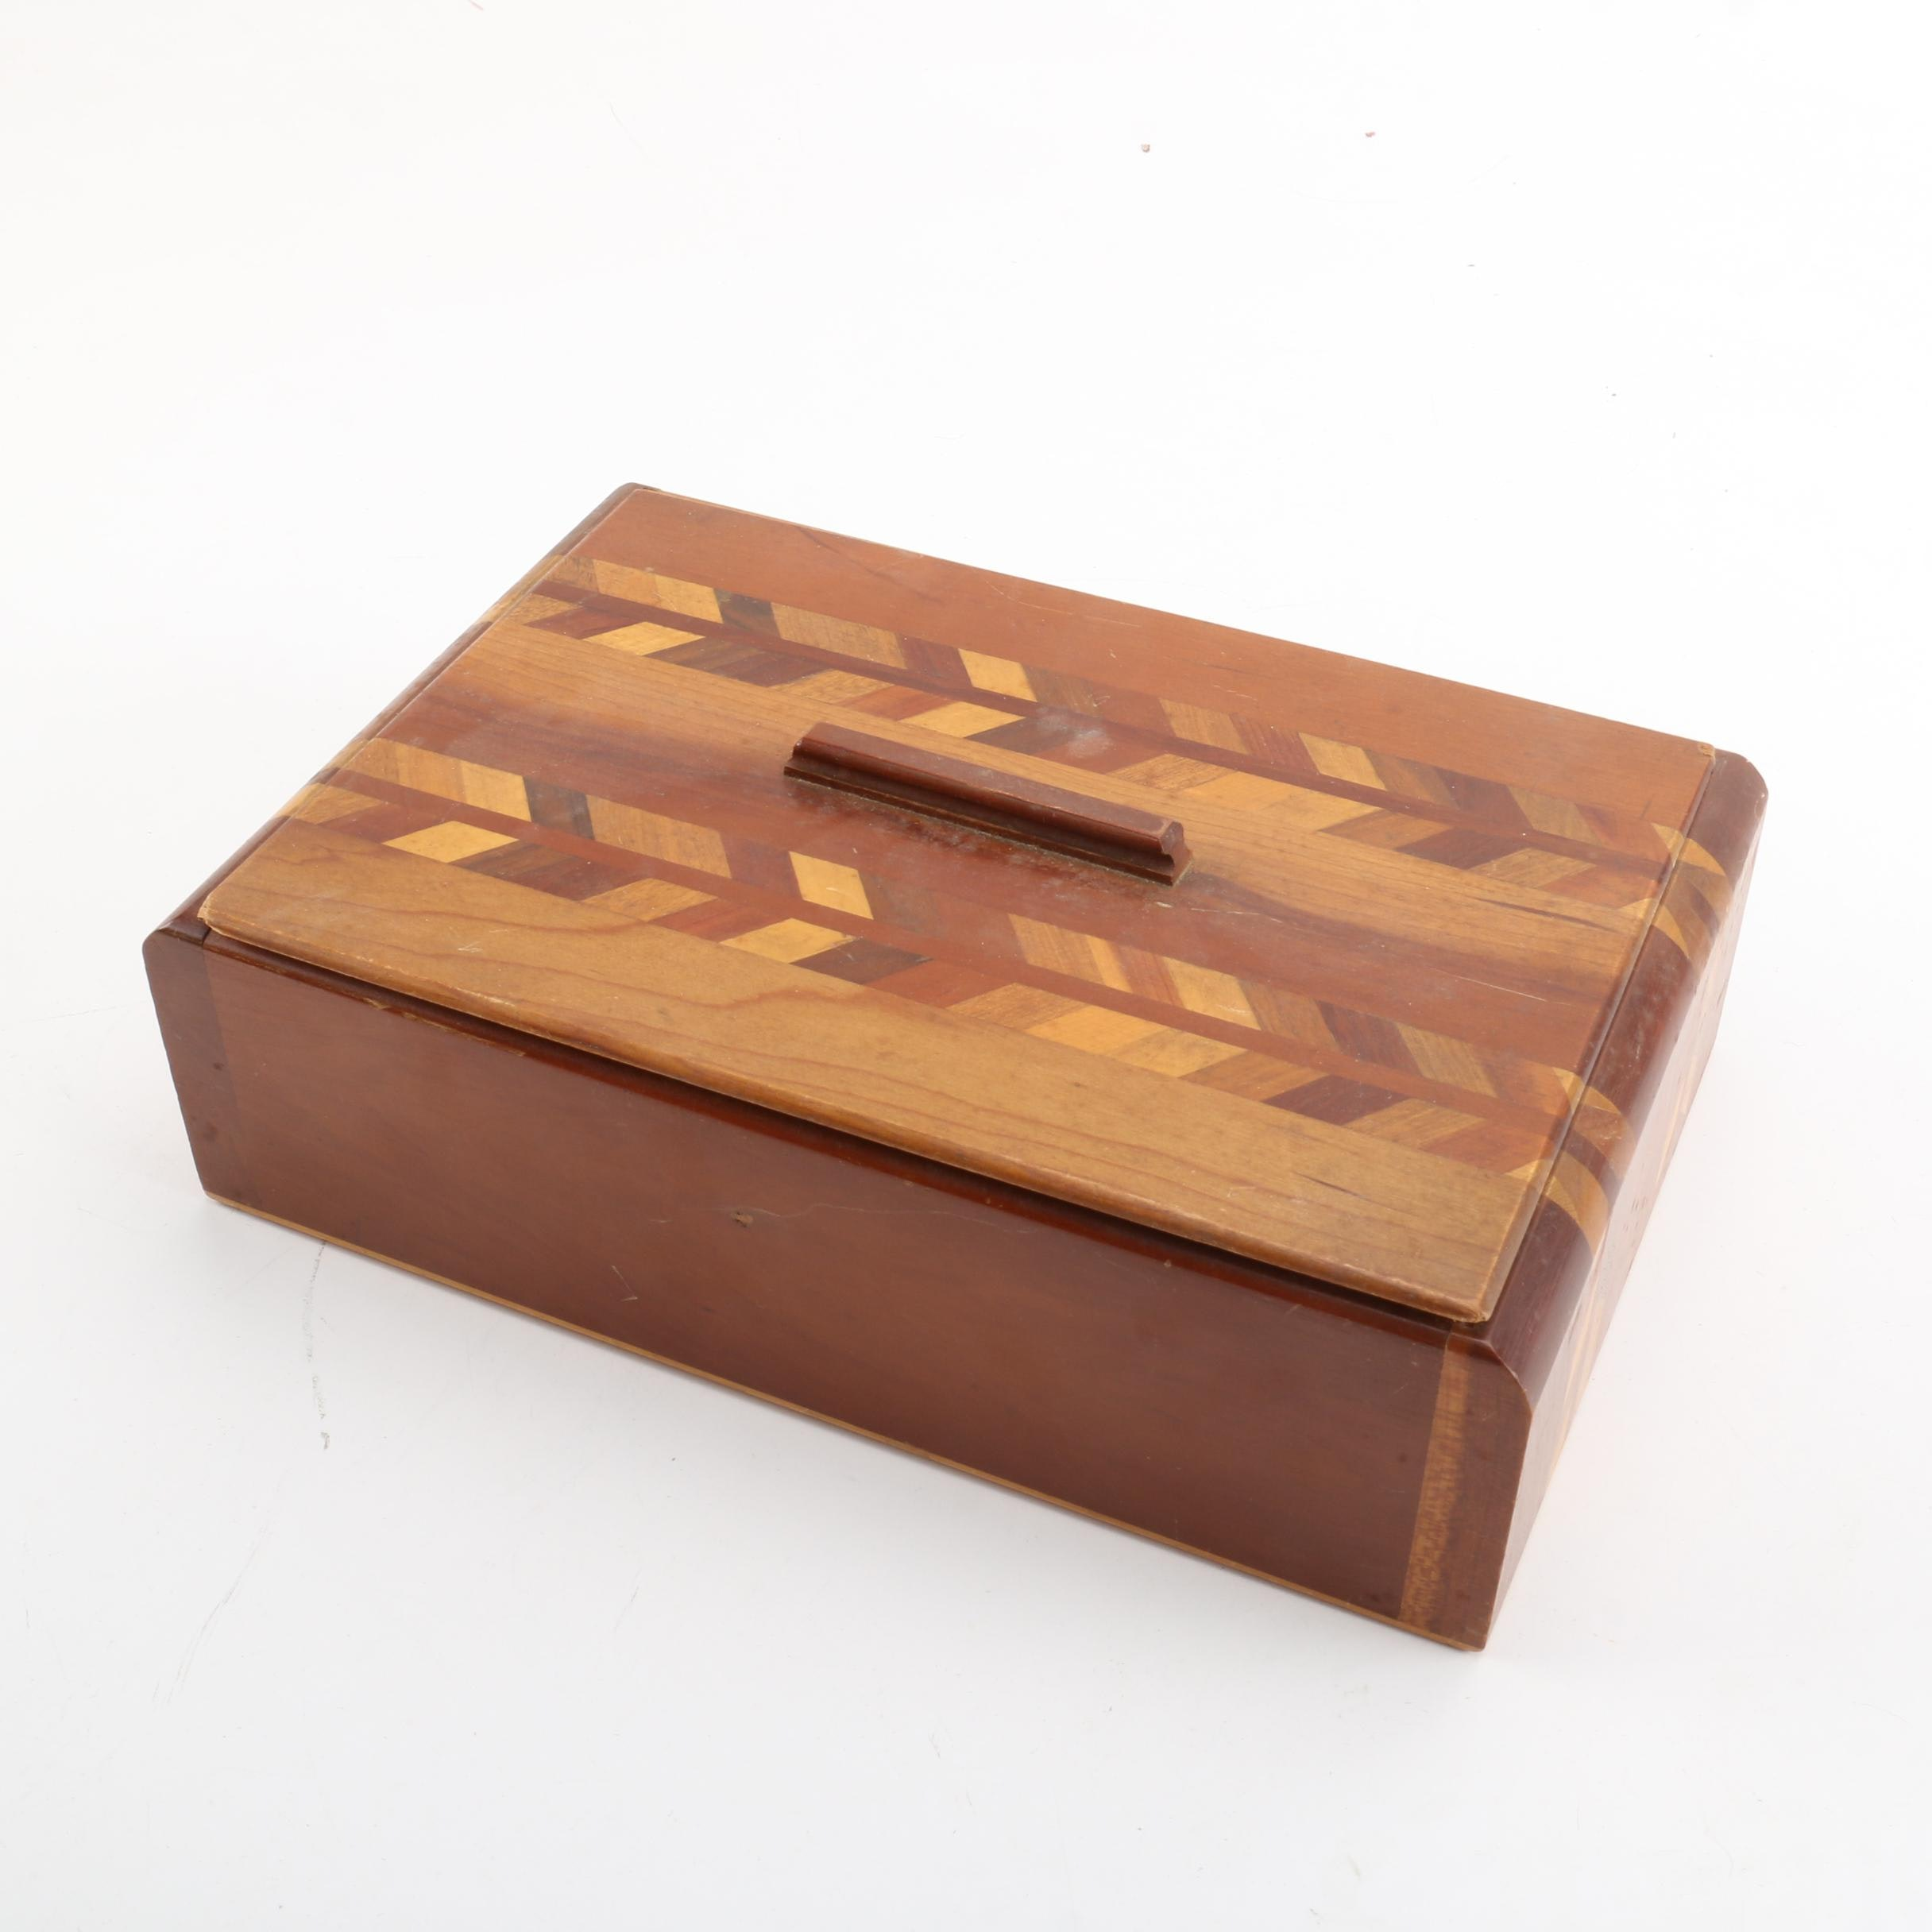 Decorative Handcrafted Inlaid Wood Box